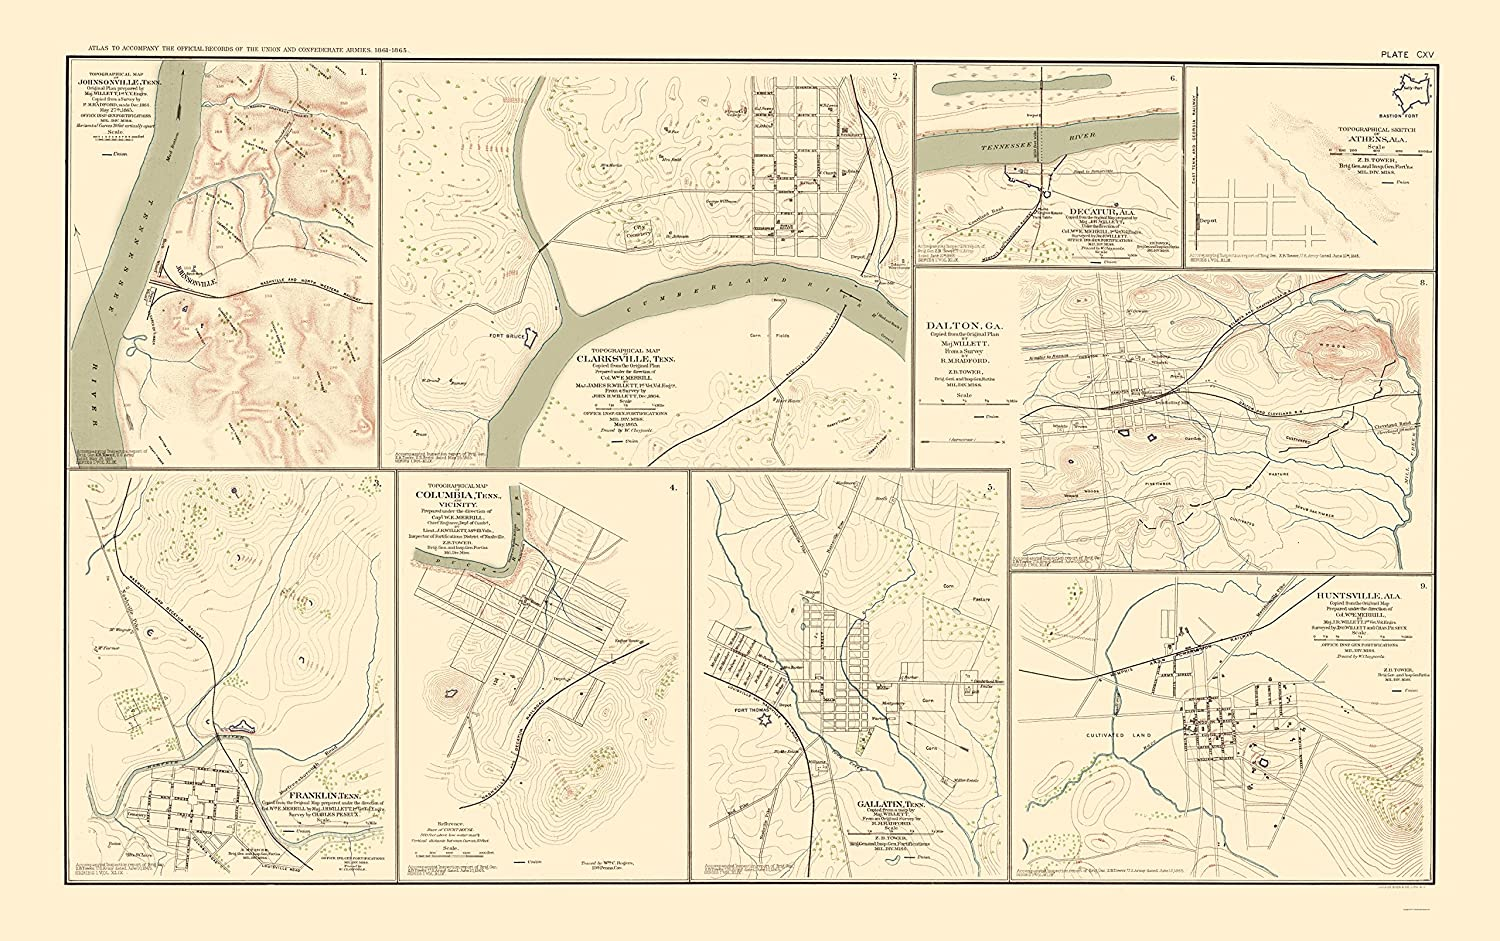 Amazon.com: Civil War Map - Tennessee, Alabama, Georgia ... on map of france with cities, map rivers in alabama, map of cities vermont, map of cities near dallas, map of ashville alabama, large map of alabama, map of jefferson county, alabama, detailed map of alabama, map of beaches of alabama, map of helena alabama, map of cities puerto rico, map of pennsylvania with cities, map of decatur, alabama, alabama city alabama, map of cities around atlanta, map showing alabama counties, map of cities around phoenix, map counties in alabama, map of cities of virginia, map of cities new york,